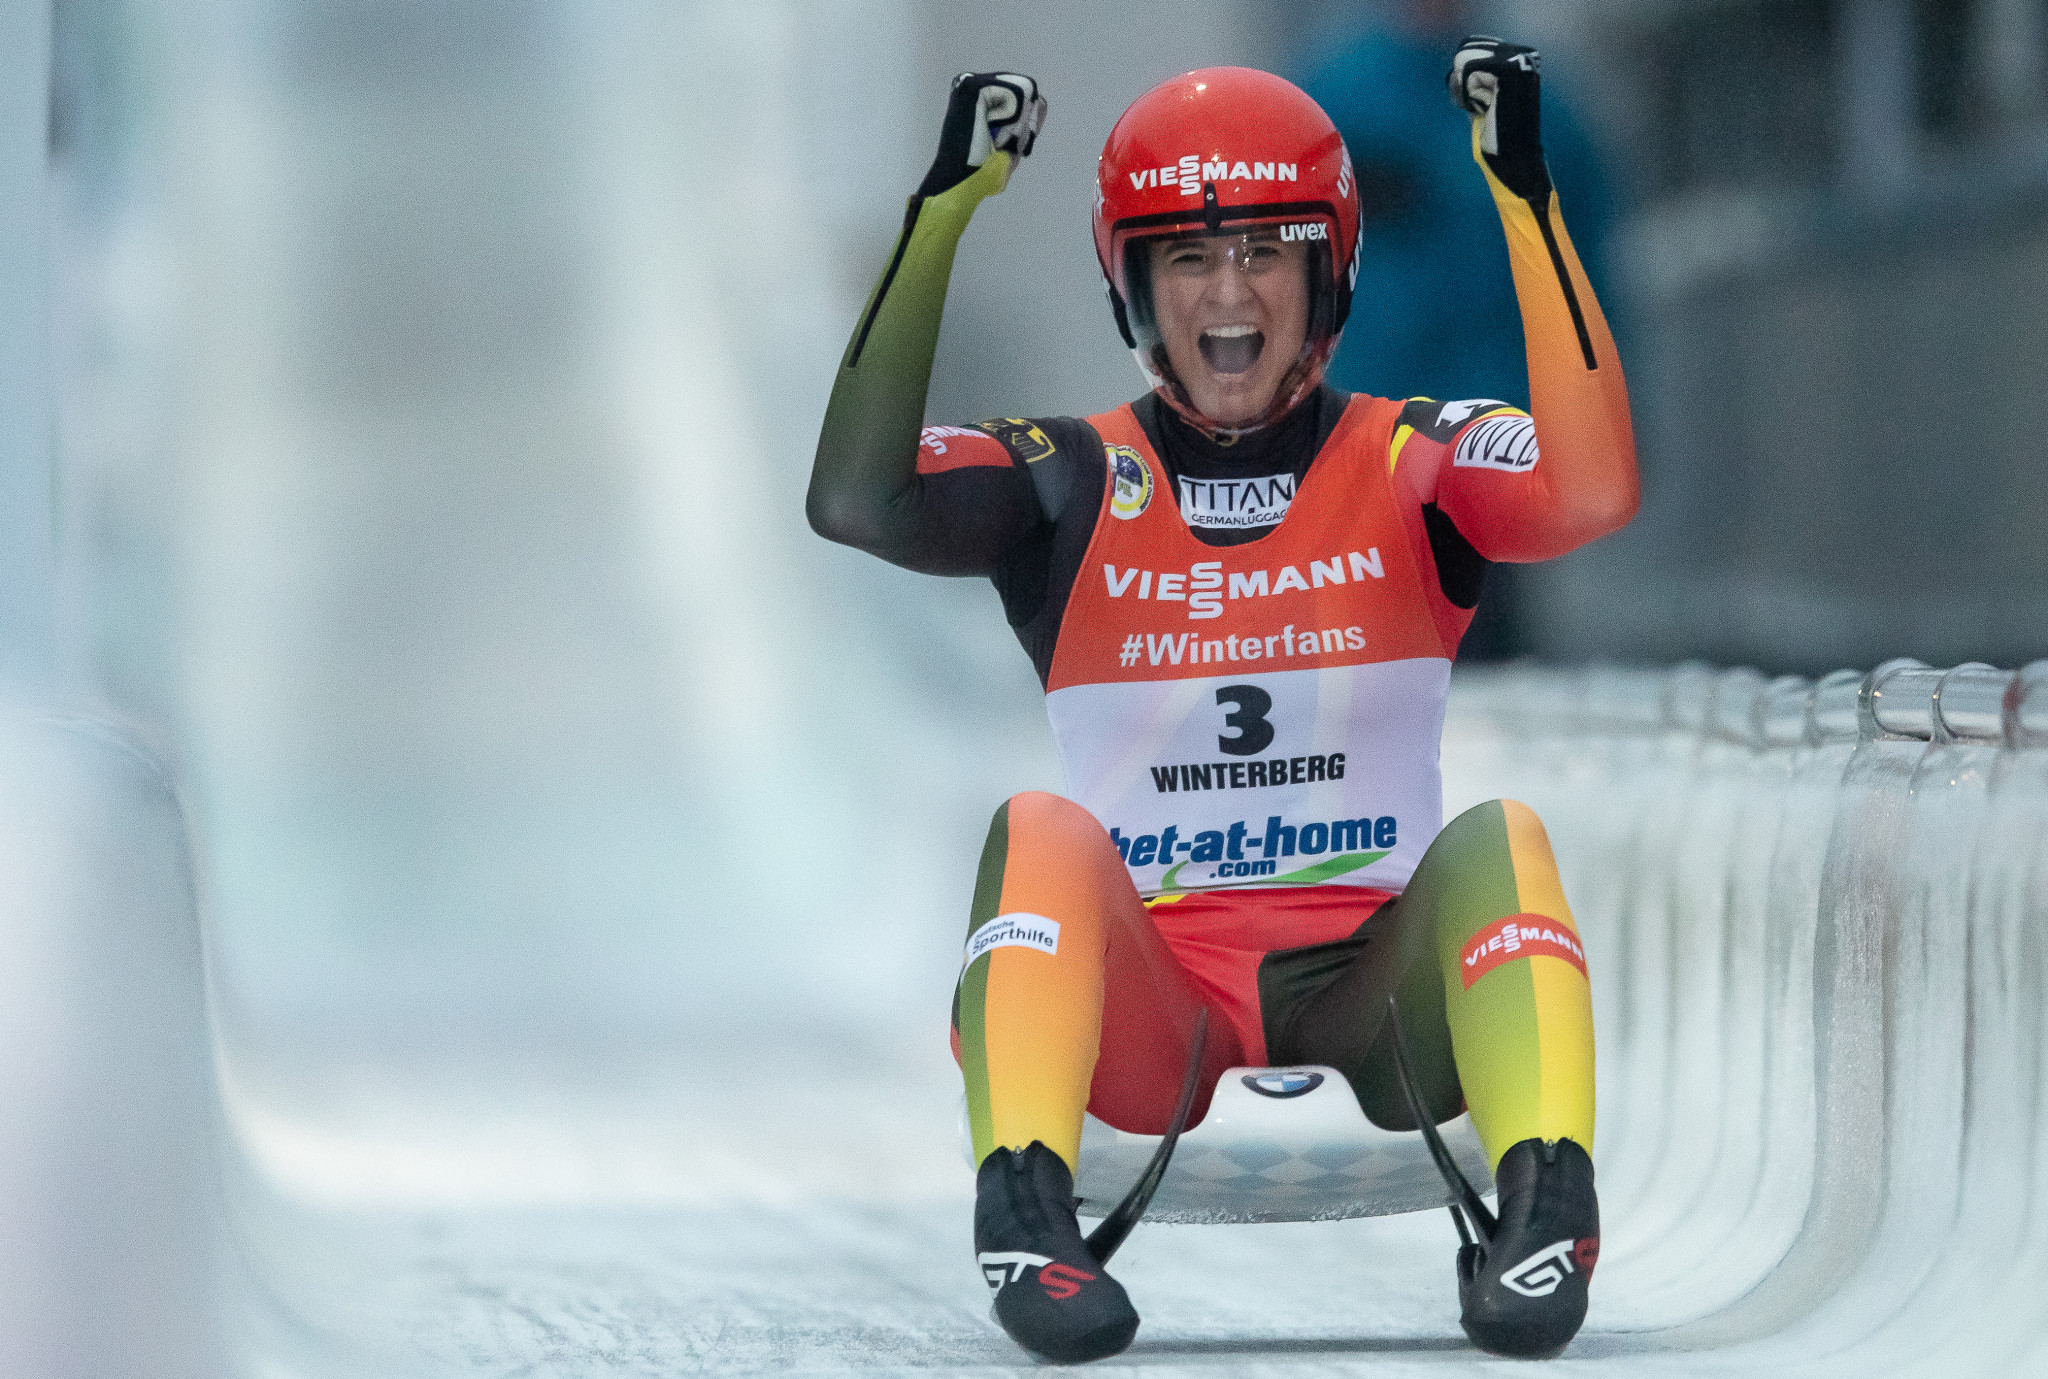 Newly-crowned world champions ready to compete at FIL World Cup event in Altenberg